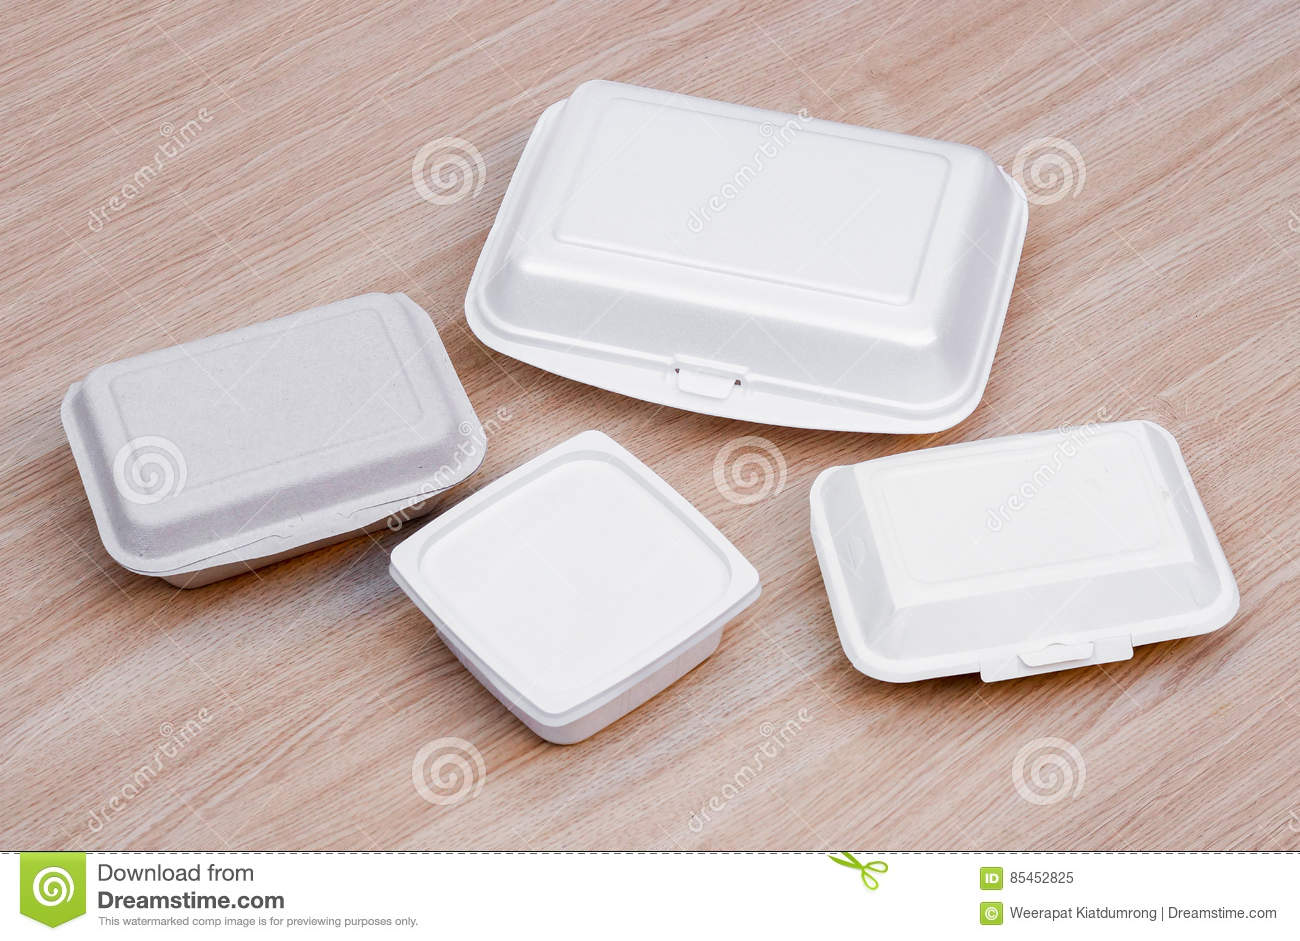 Different Types Of Foam Foam Box Stock Image Image Of Environment Container 85452825